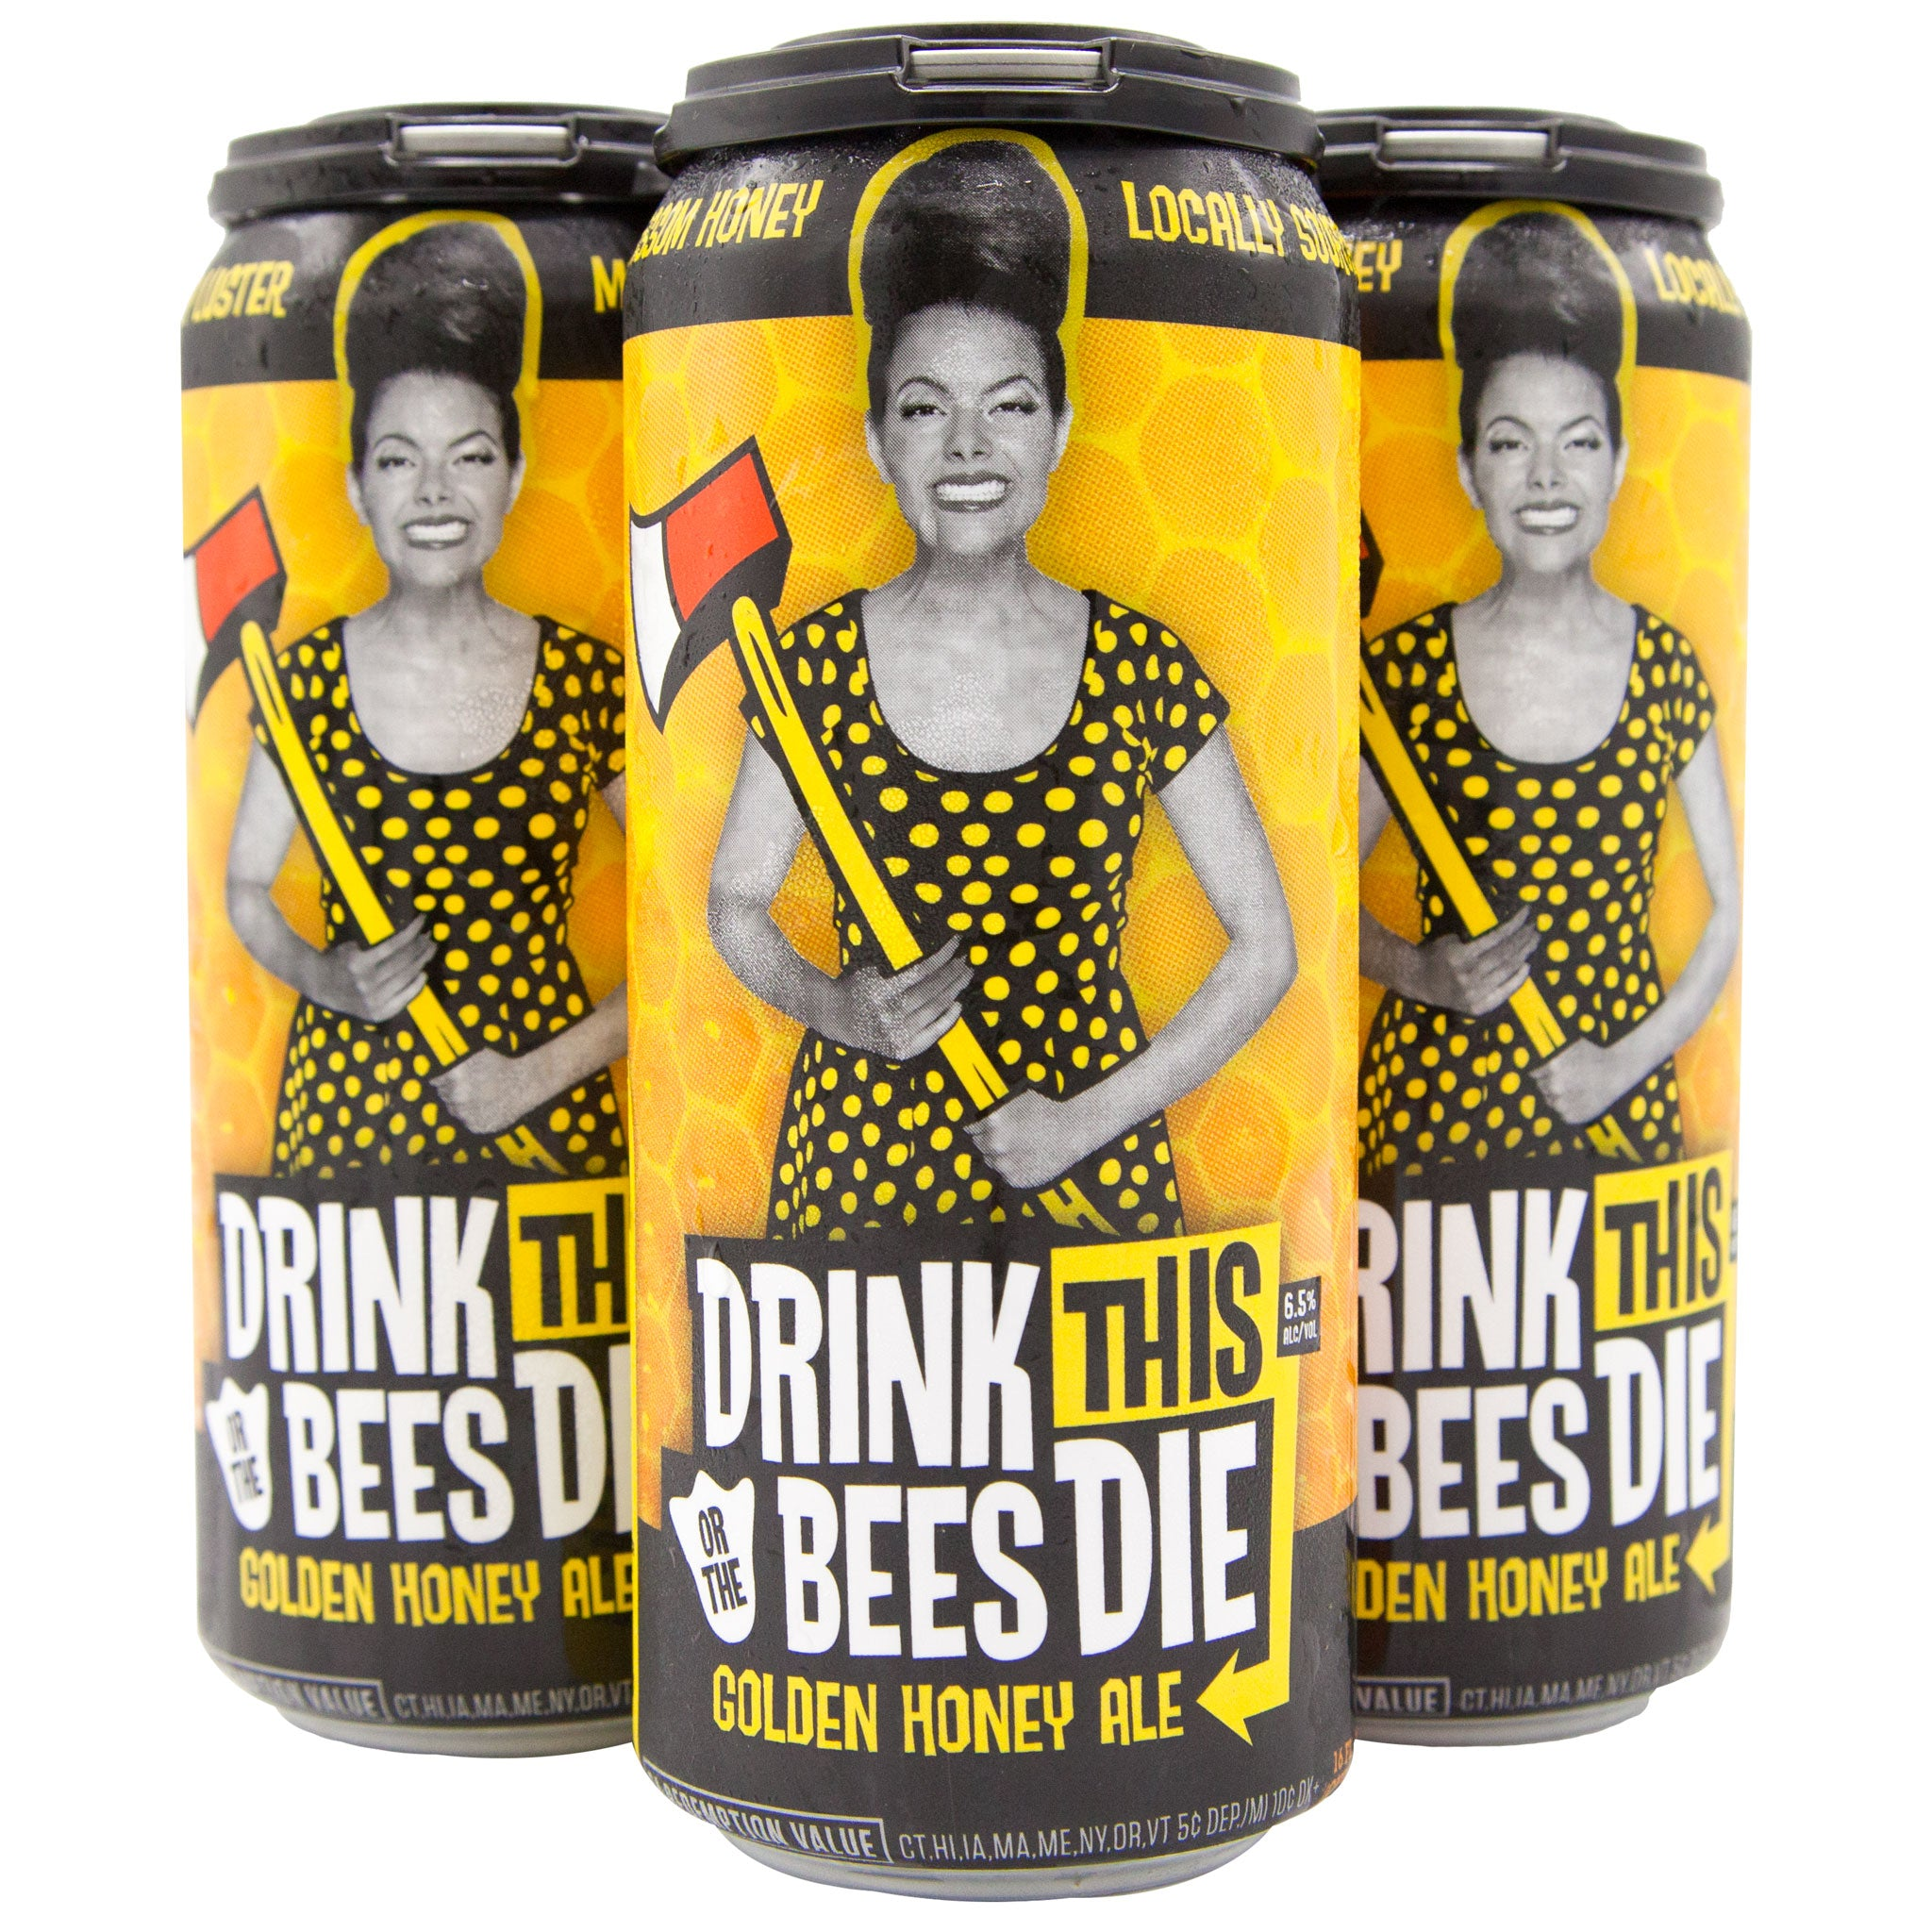 Drink This or the Bees Die CASE (6 x 4 Packs of 16oz Cans) ** CA SHIPPING ONLY